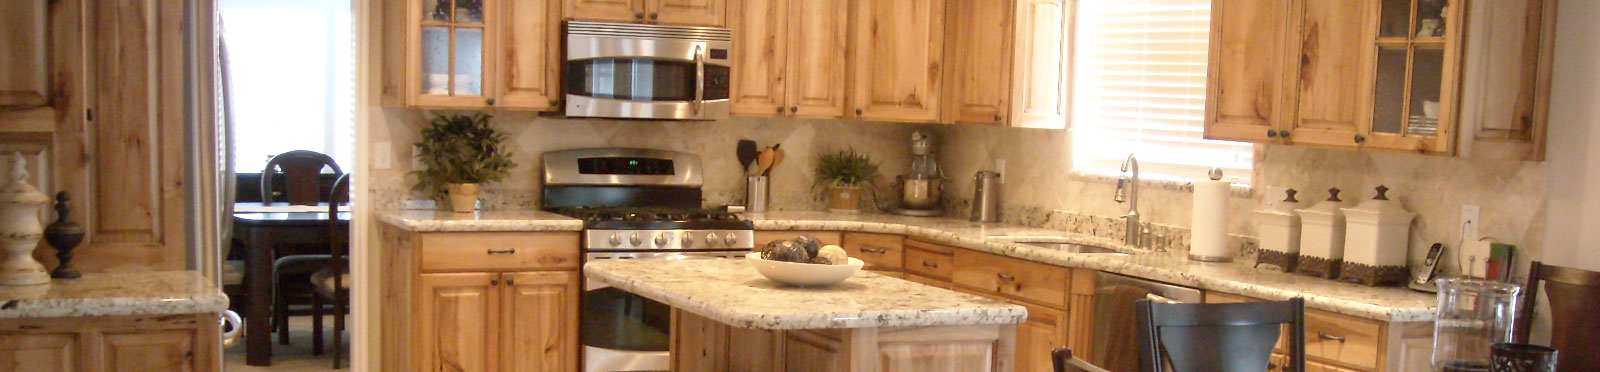 Superior Utah 3 Day Kitchen And Bath Remodeling Great Pictures